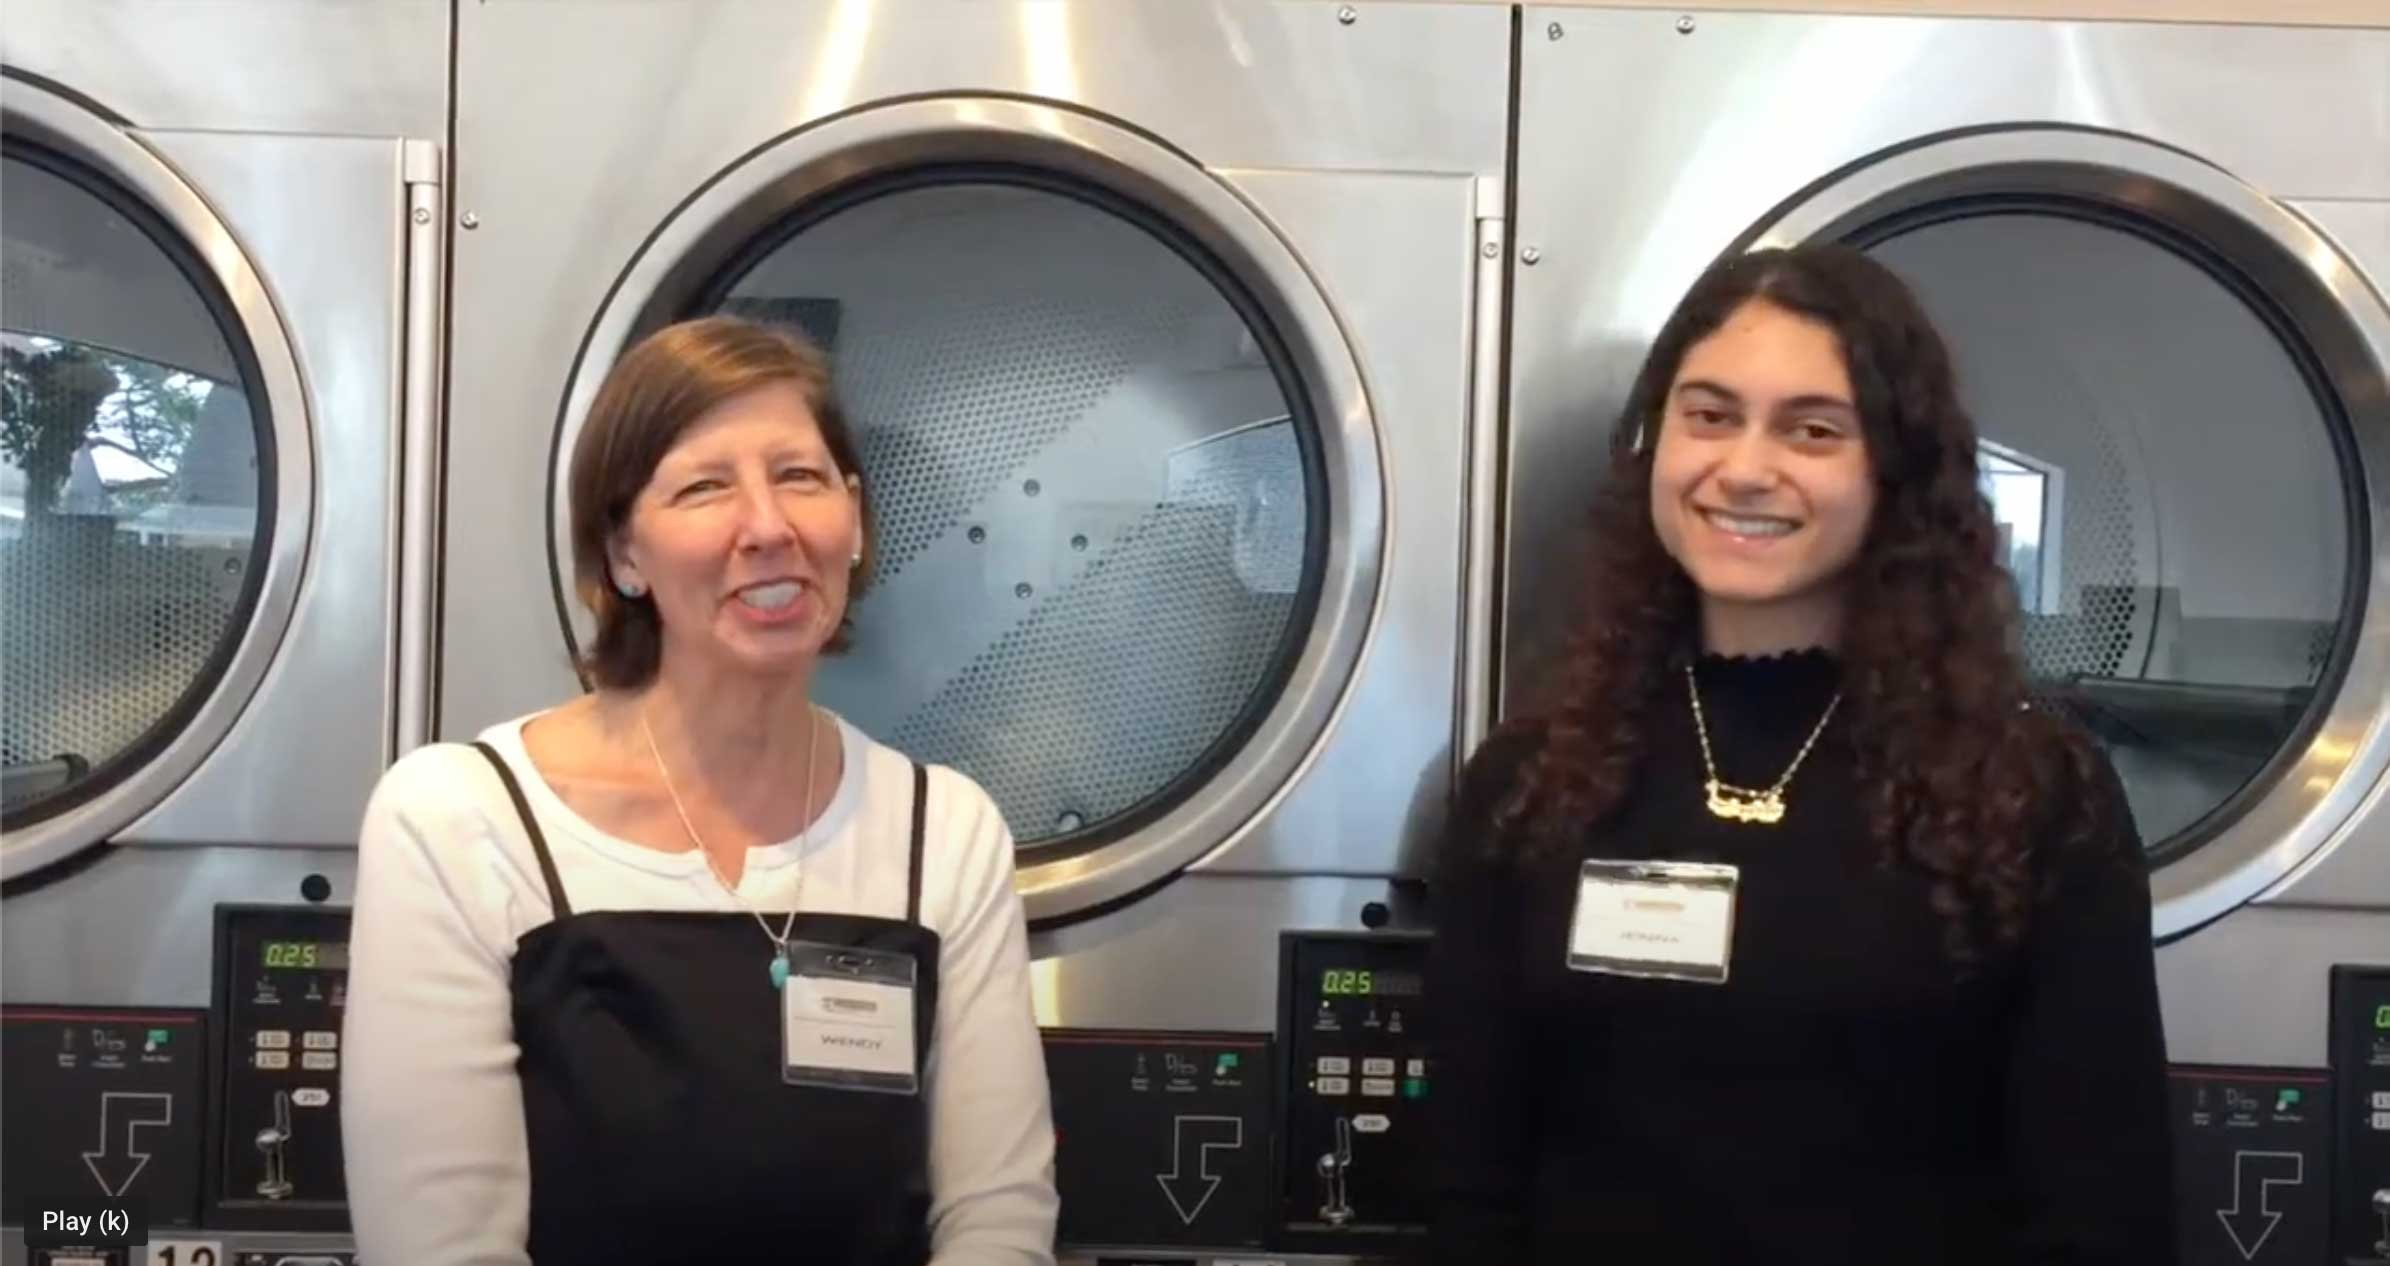 two smiling women standing in front of industrial washing machines